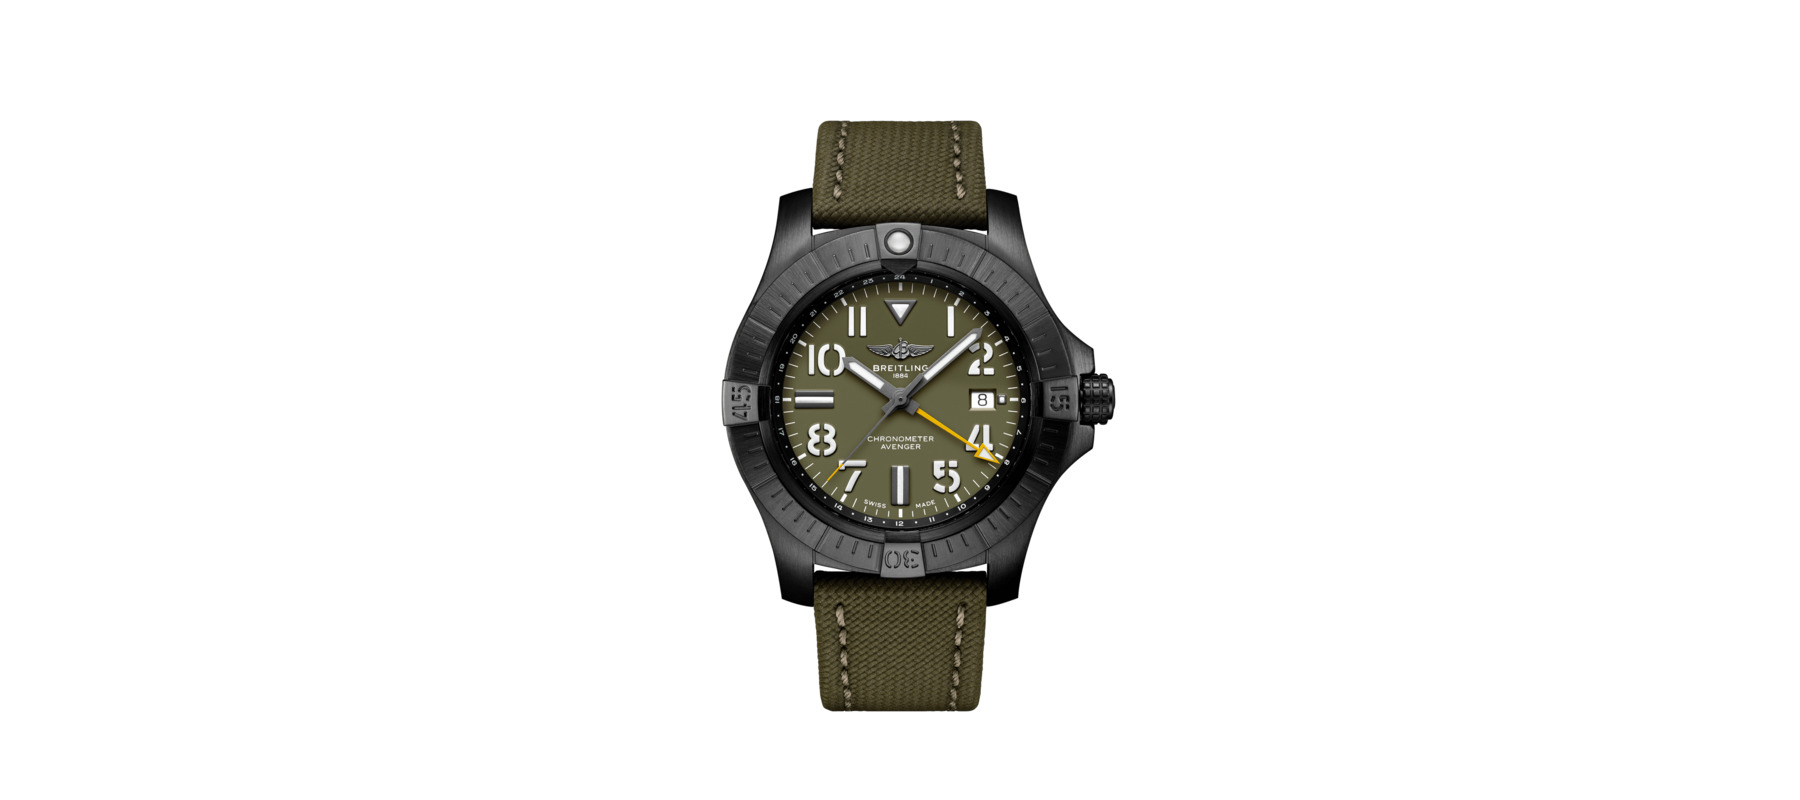 v323952a1l1x1-avenger-automatic-gmt-45-night-mission-limited-edition-soldier.jpg